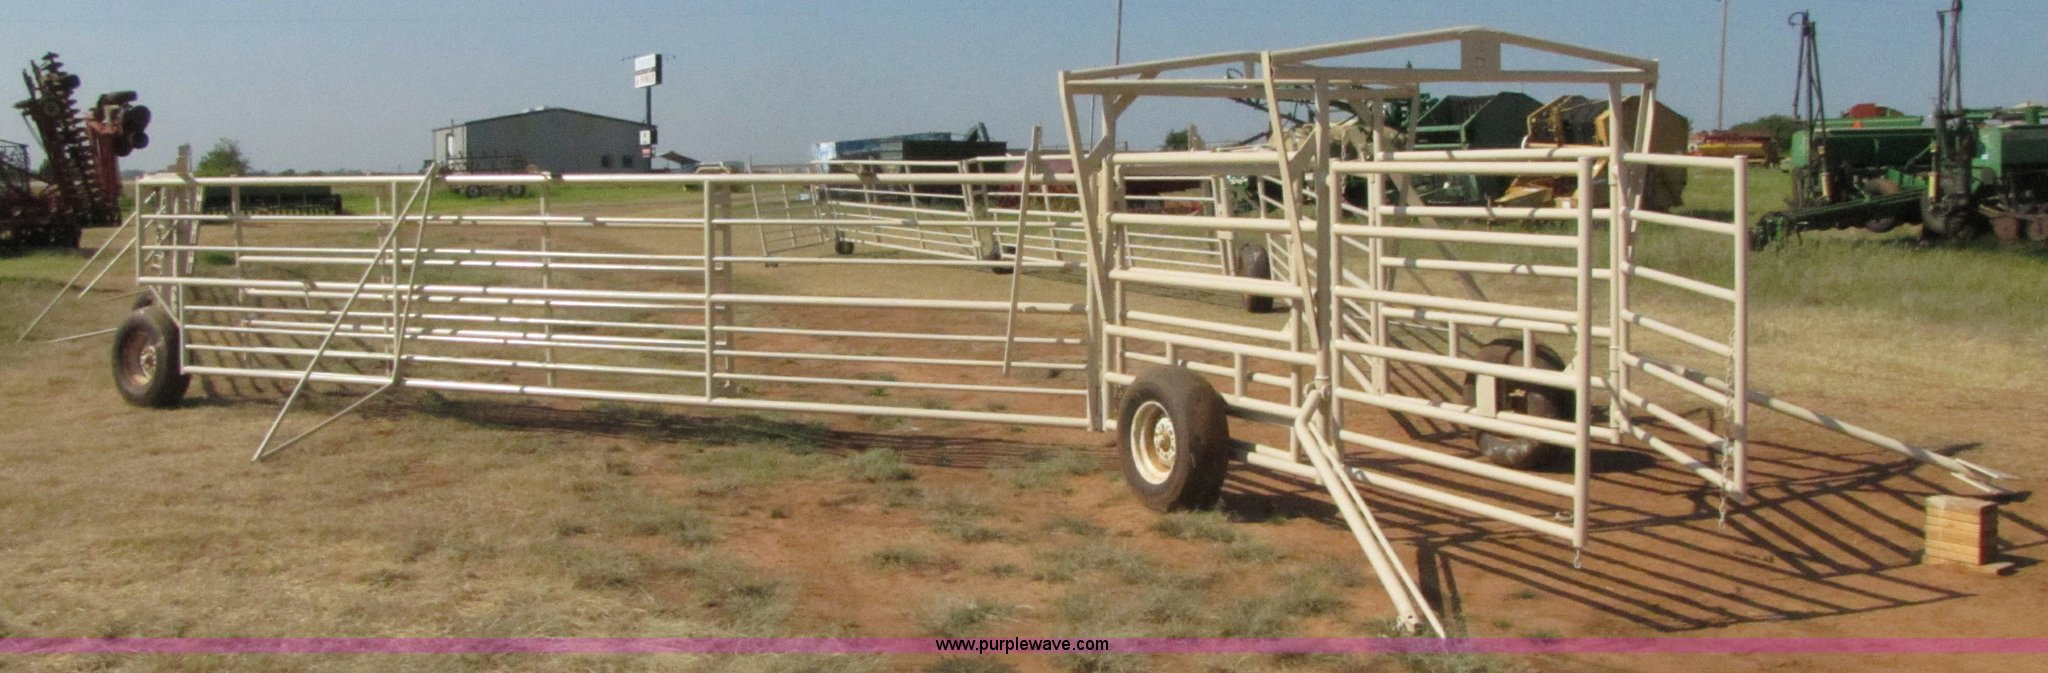 Portable Corral Systems For Horses : Wilson portable corral system item sold